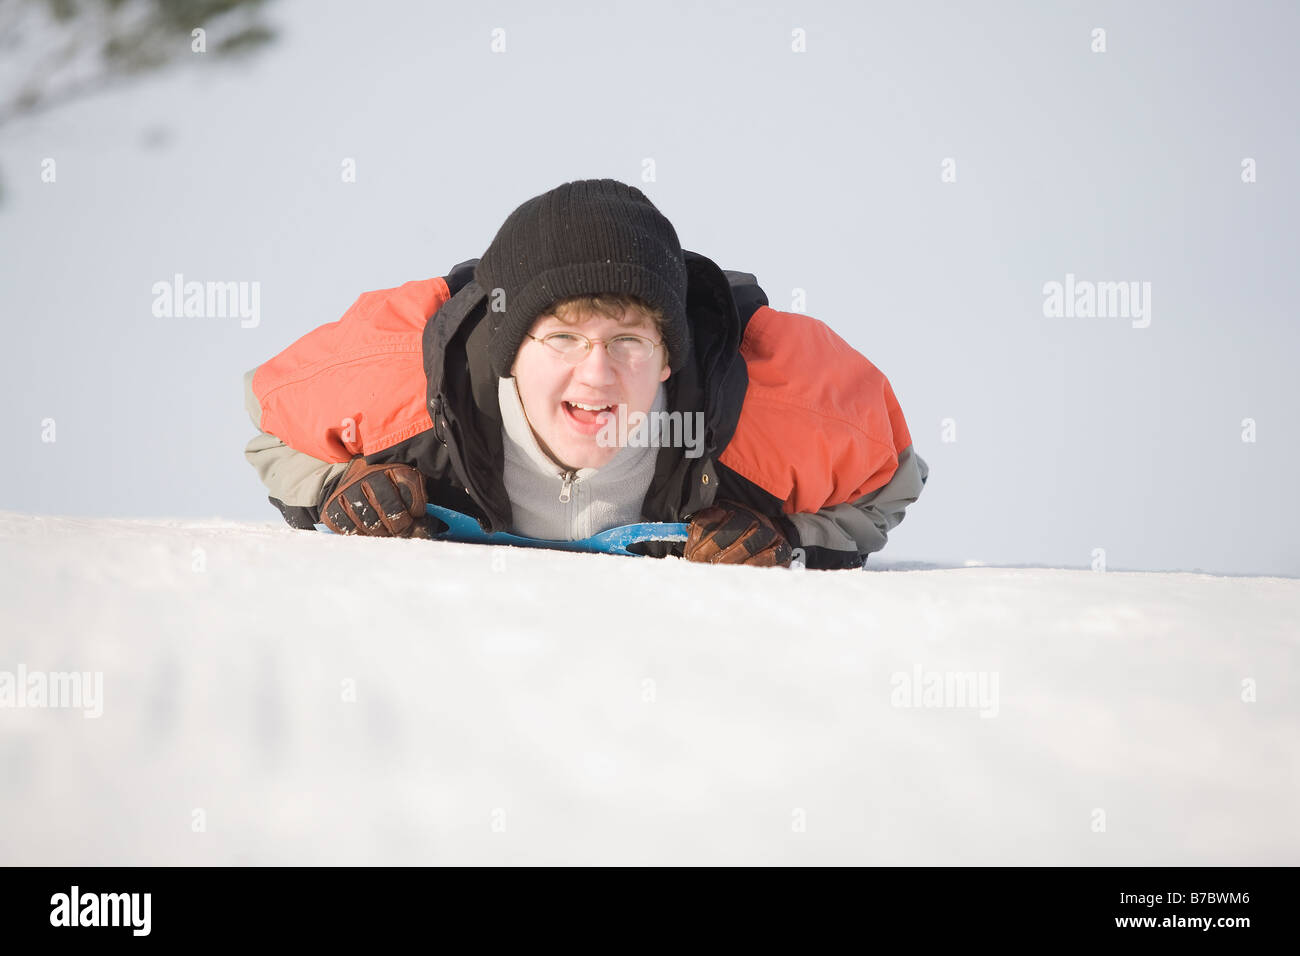 15 year old slides down hill luge-style, Winnipeg, Canada - Stock Image